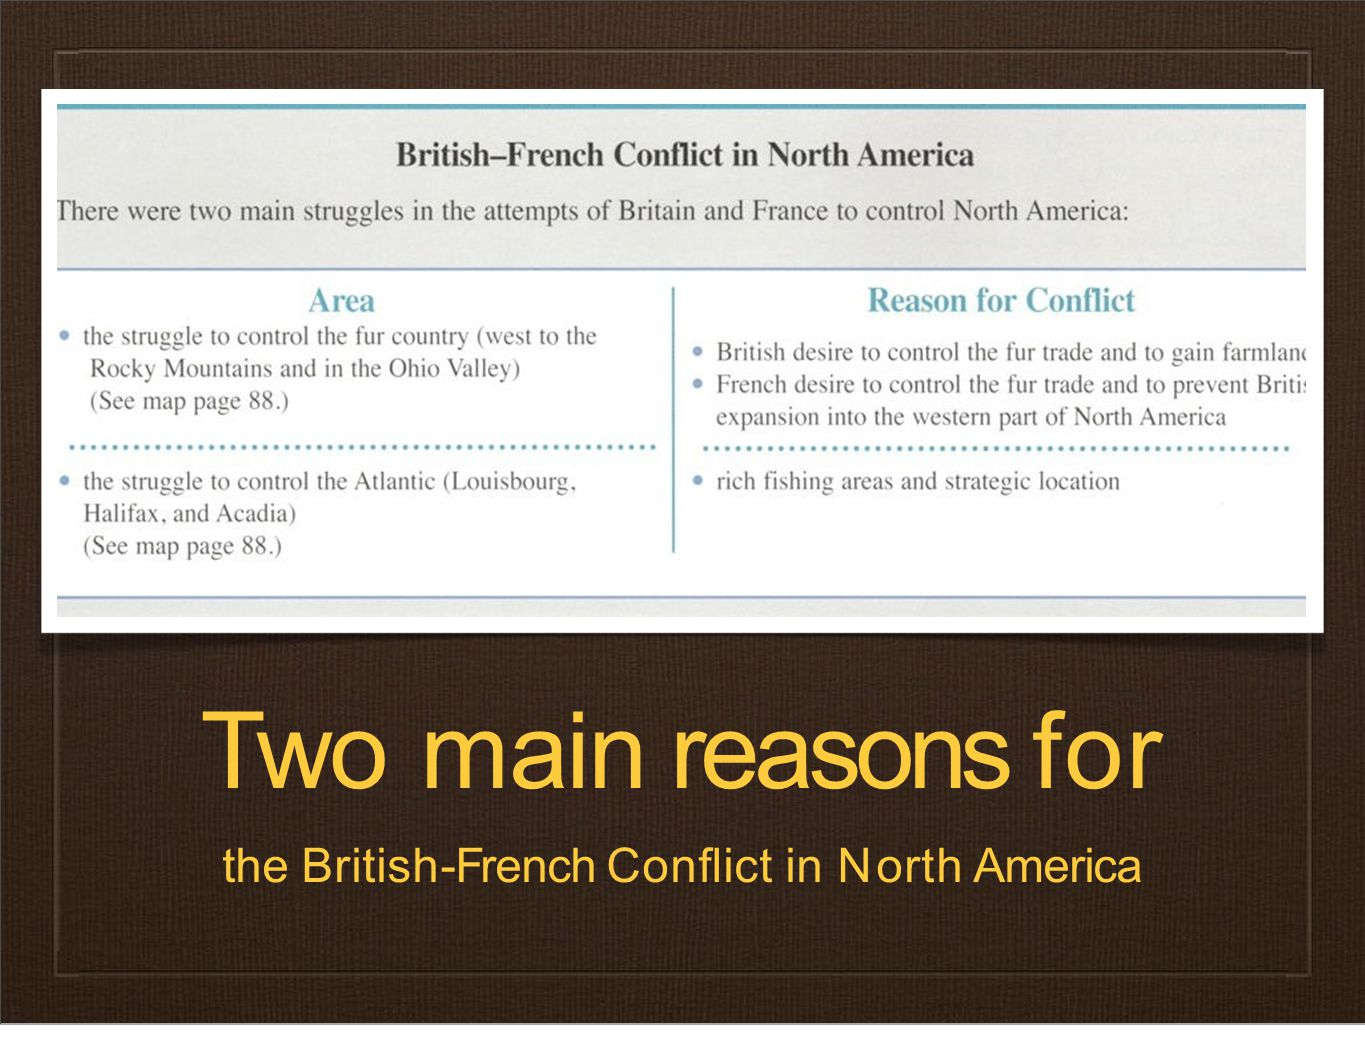 Twomainreasonsfor the British-French Conflict in North America